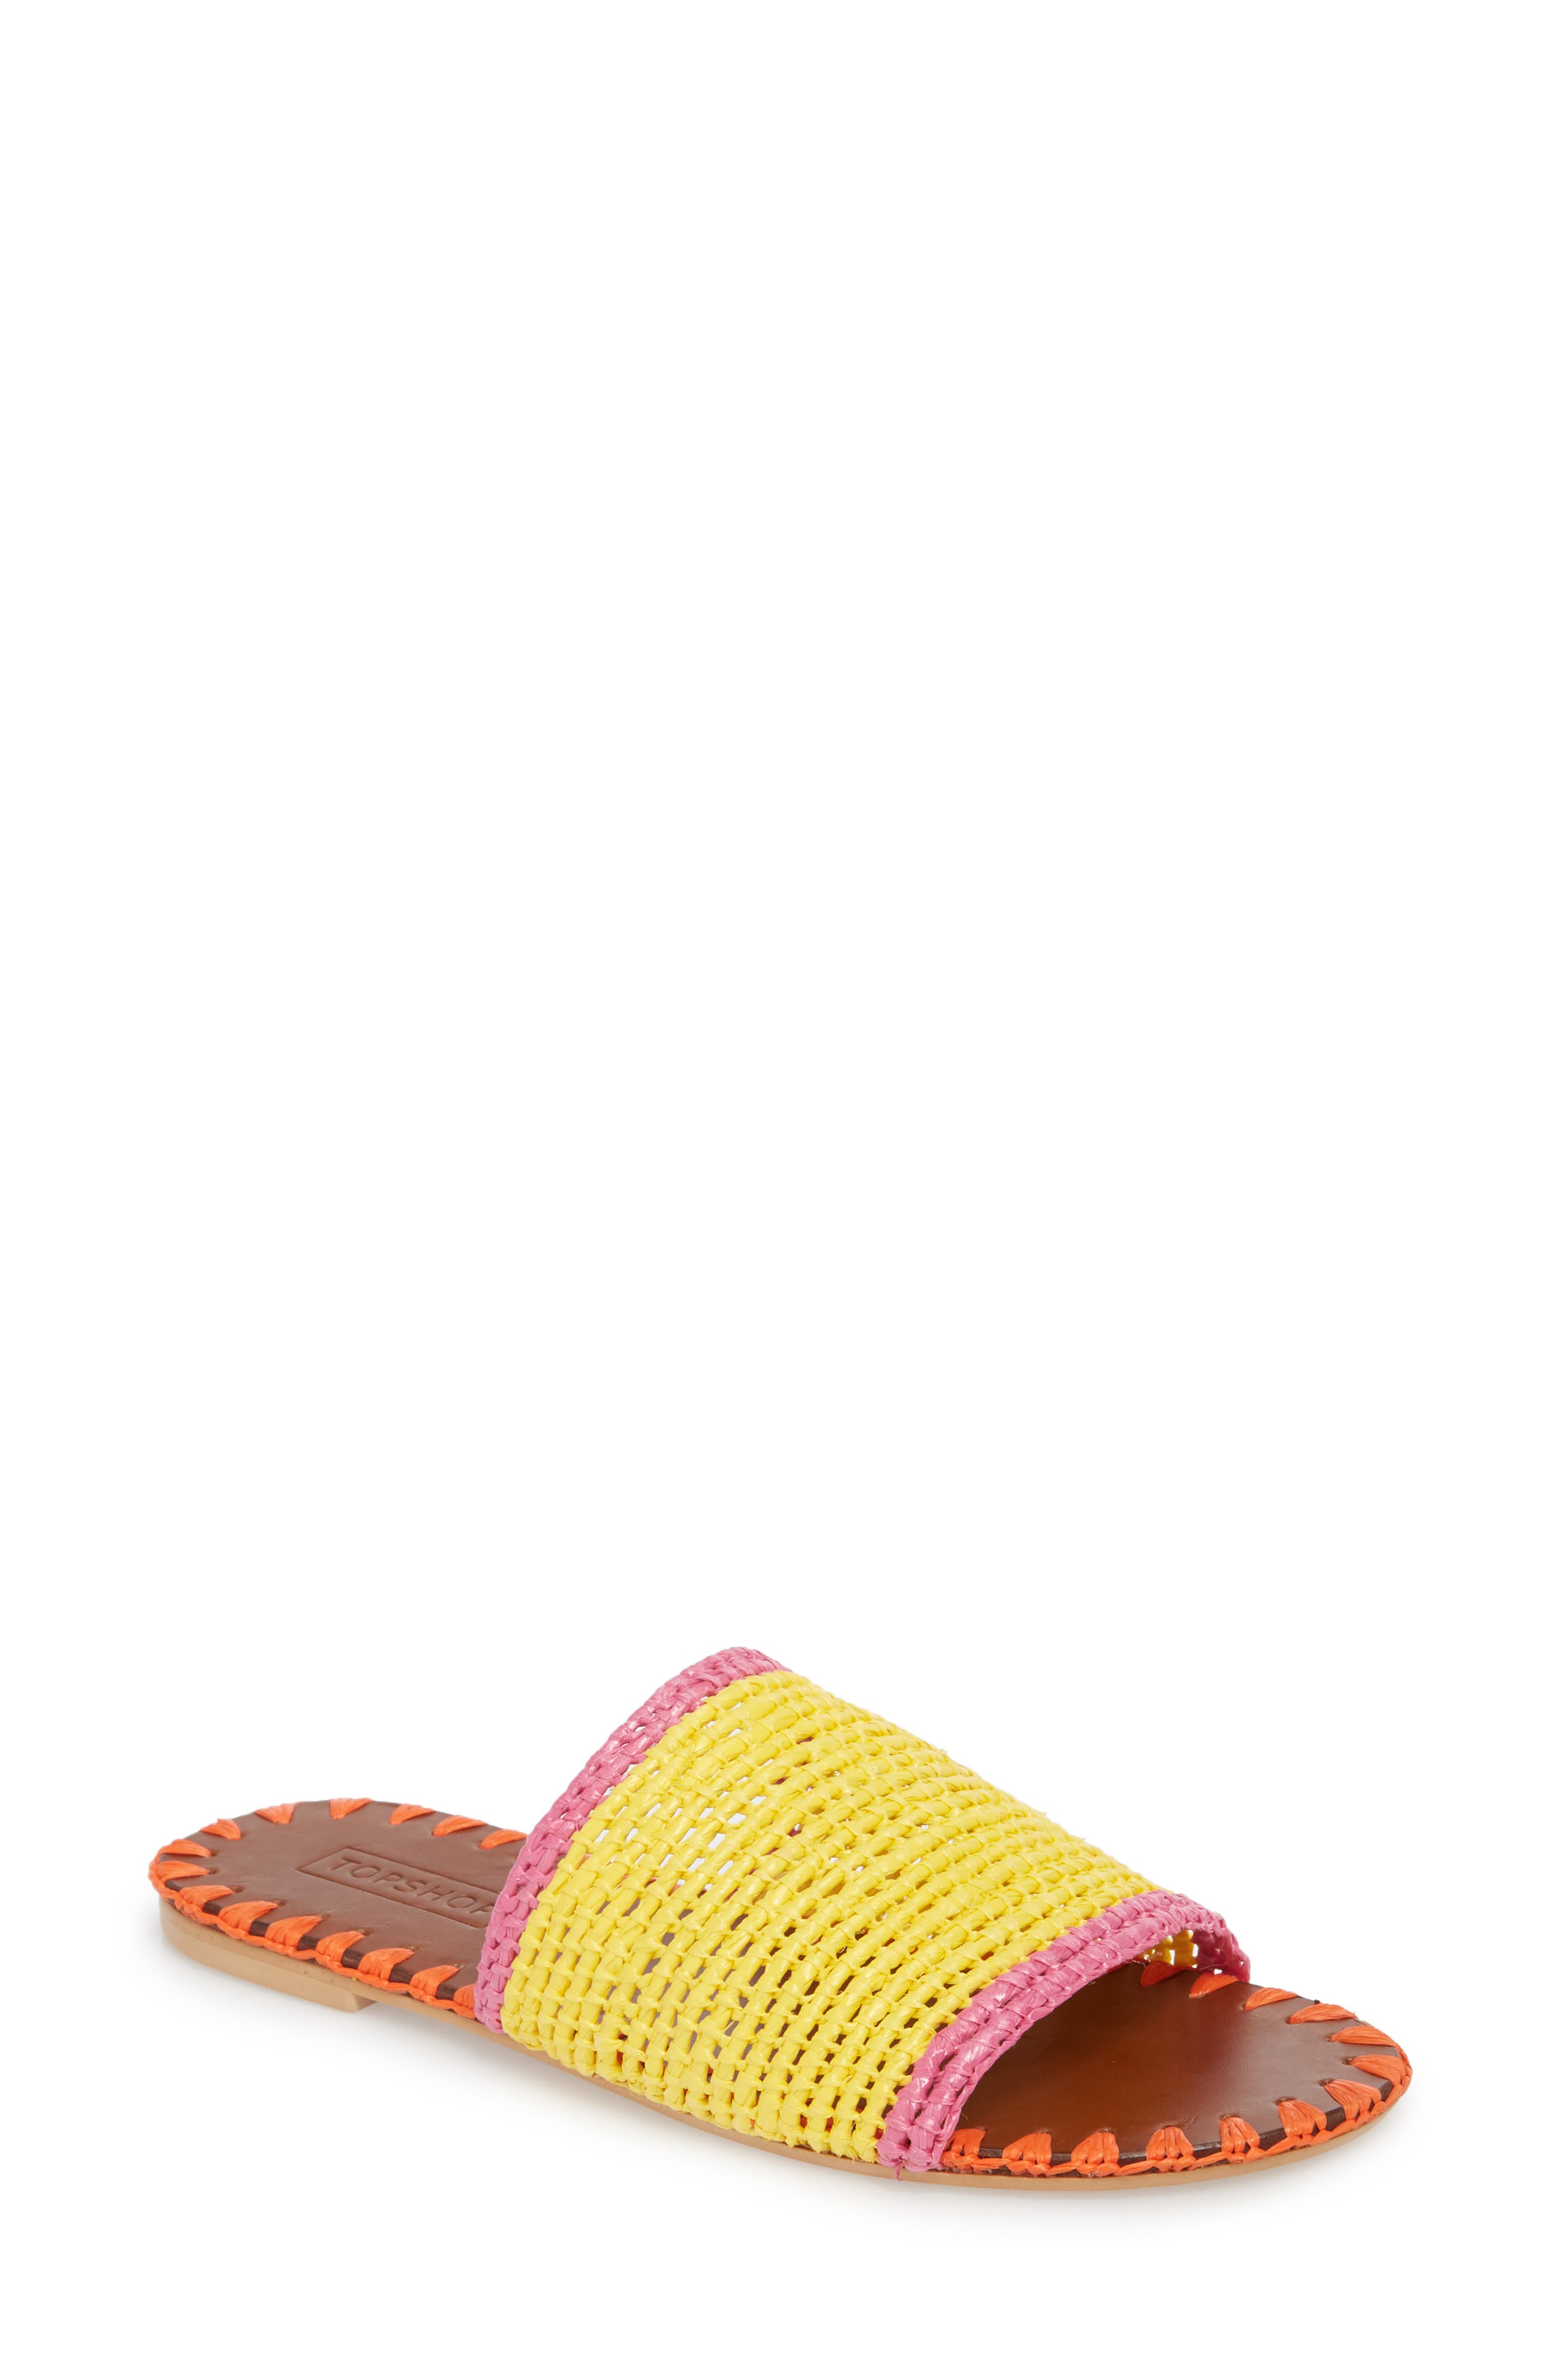 Fresh Woven Slide Sandal,                             Main thumbnail 1, color,                             Yellow Multi